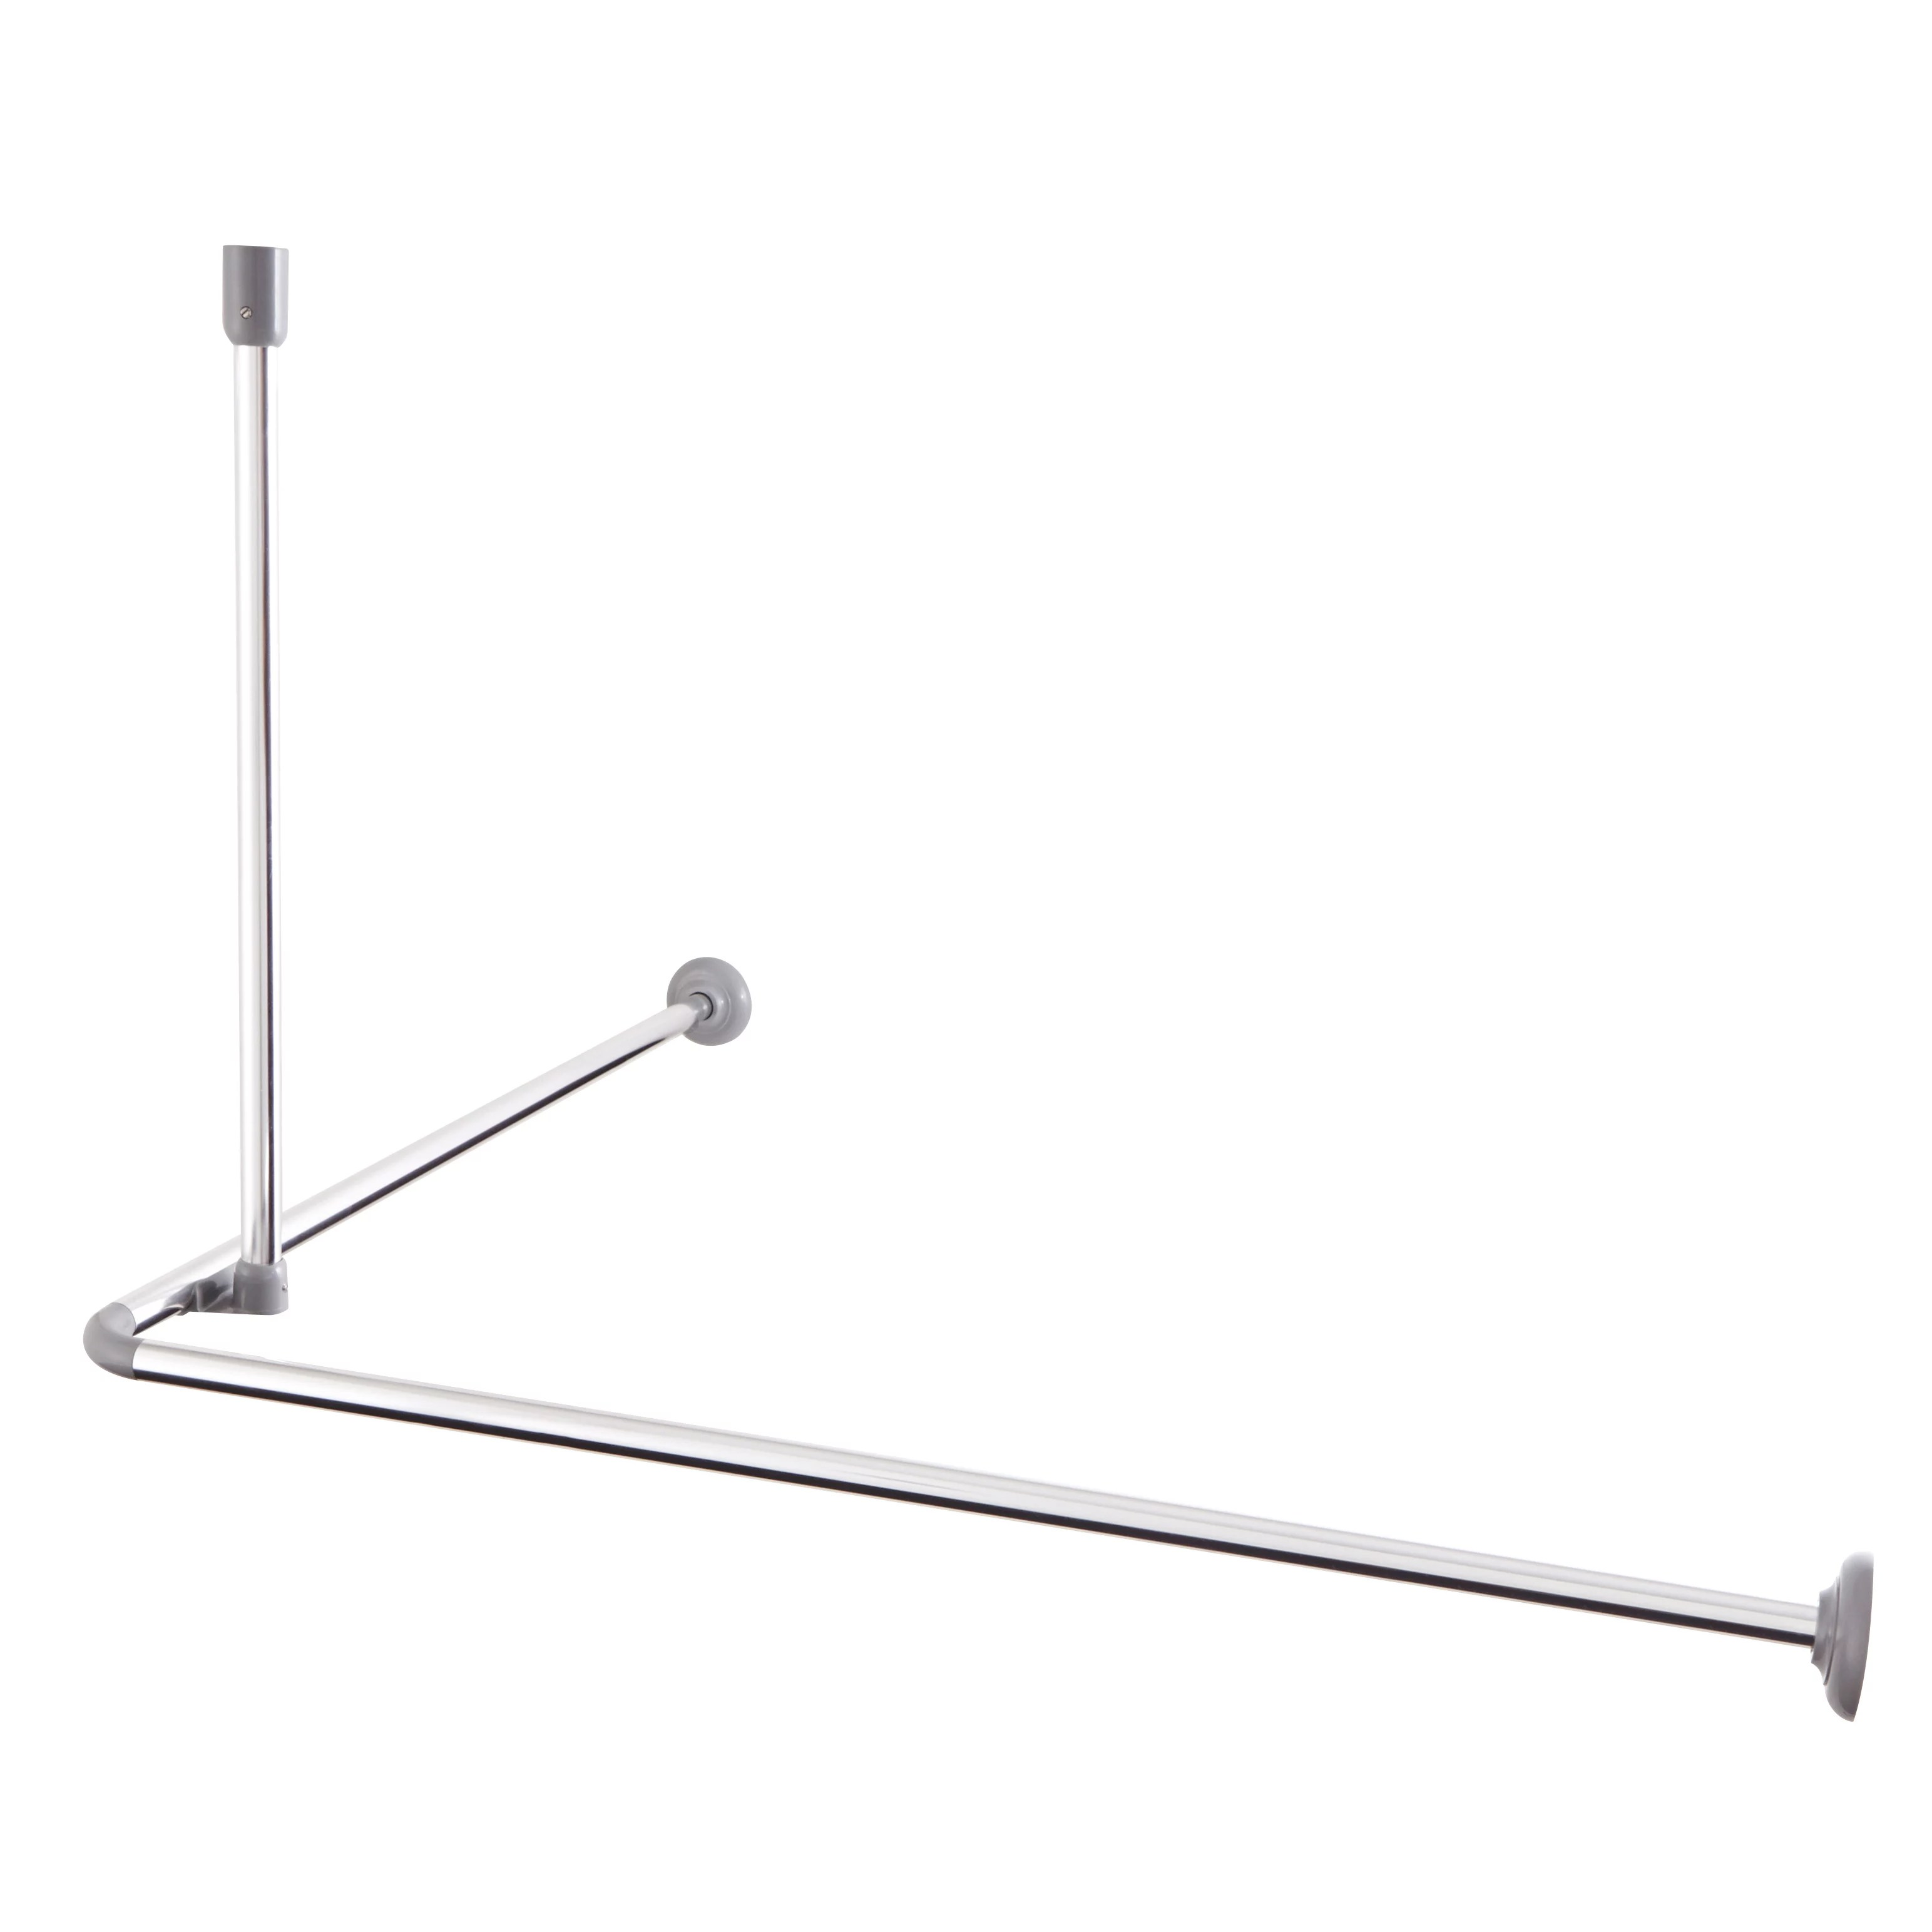 cooke lewis non extendable nira chrome effect metal angled shower curtain rod l 0 8m